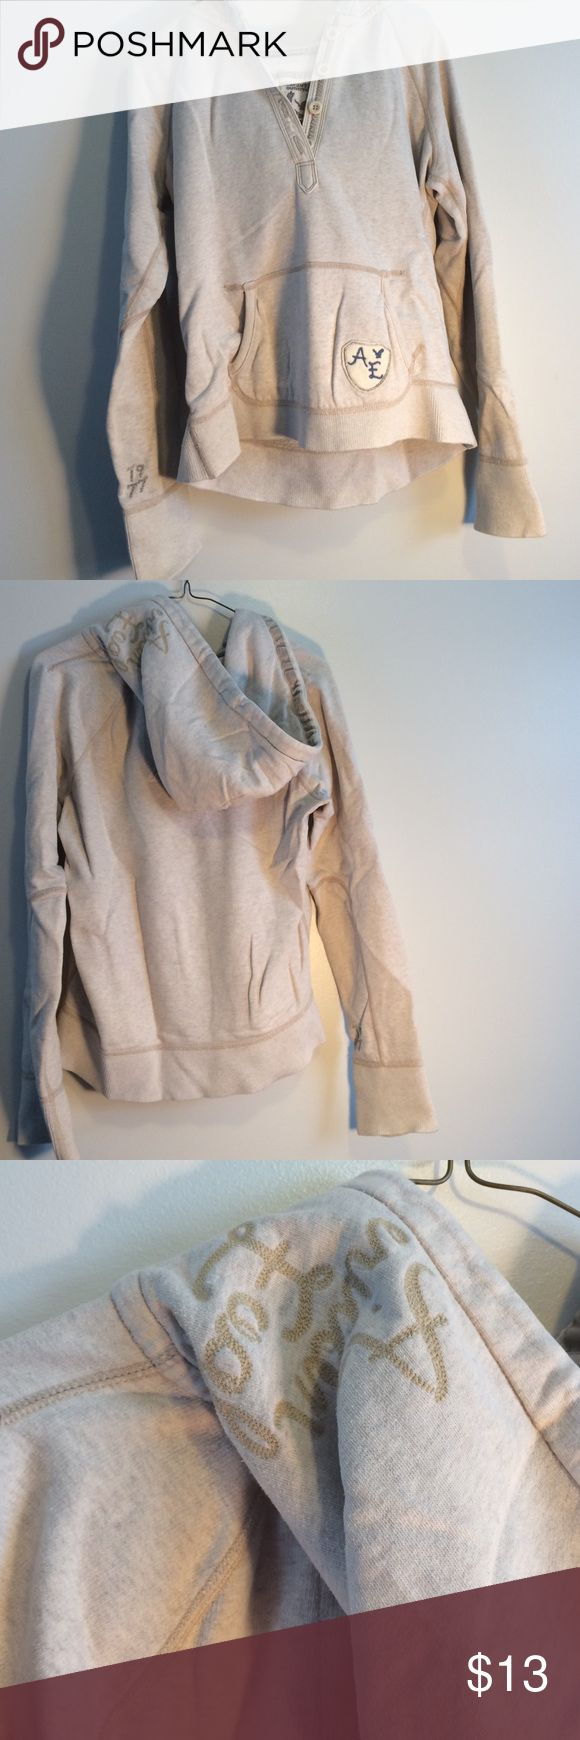 American eagle gray hoodie size medium It's a gray American eagle sweatshirt size medium. Has been loved so the fleece on the inside isn't new but still in great condition! Offers welcome using the offer button😊 American Eagle Outfitters Tops Sweatshirts & Hoodies